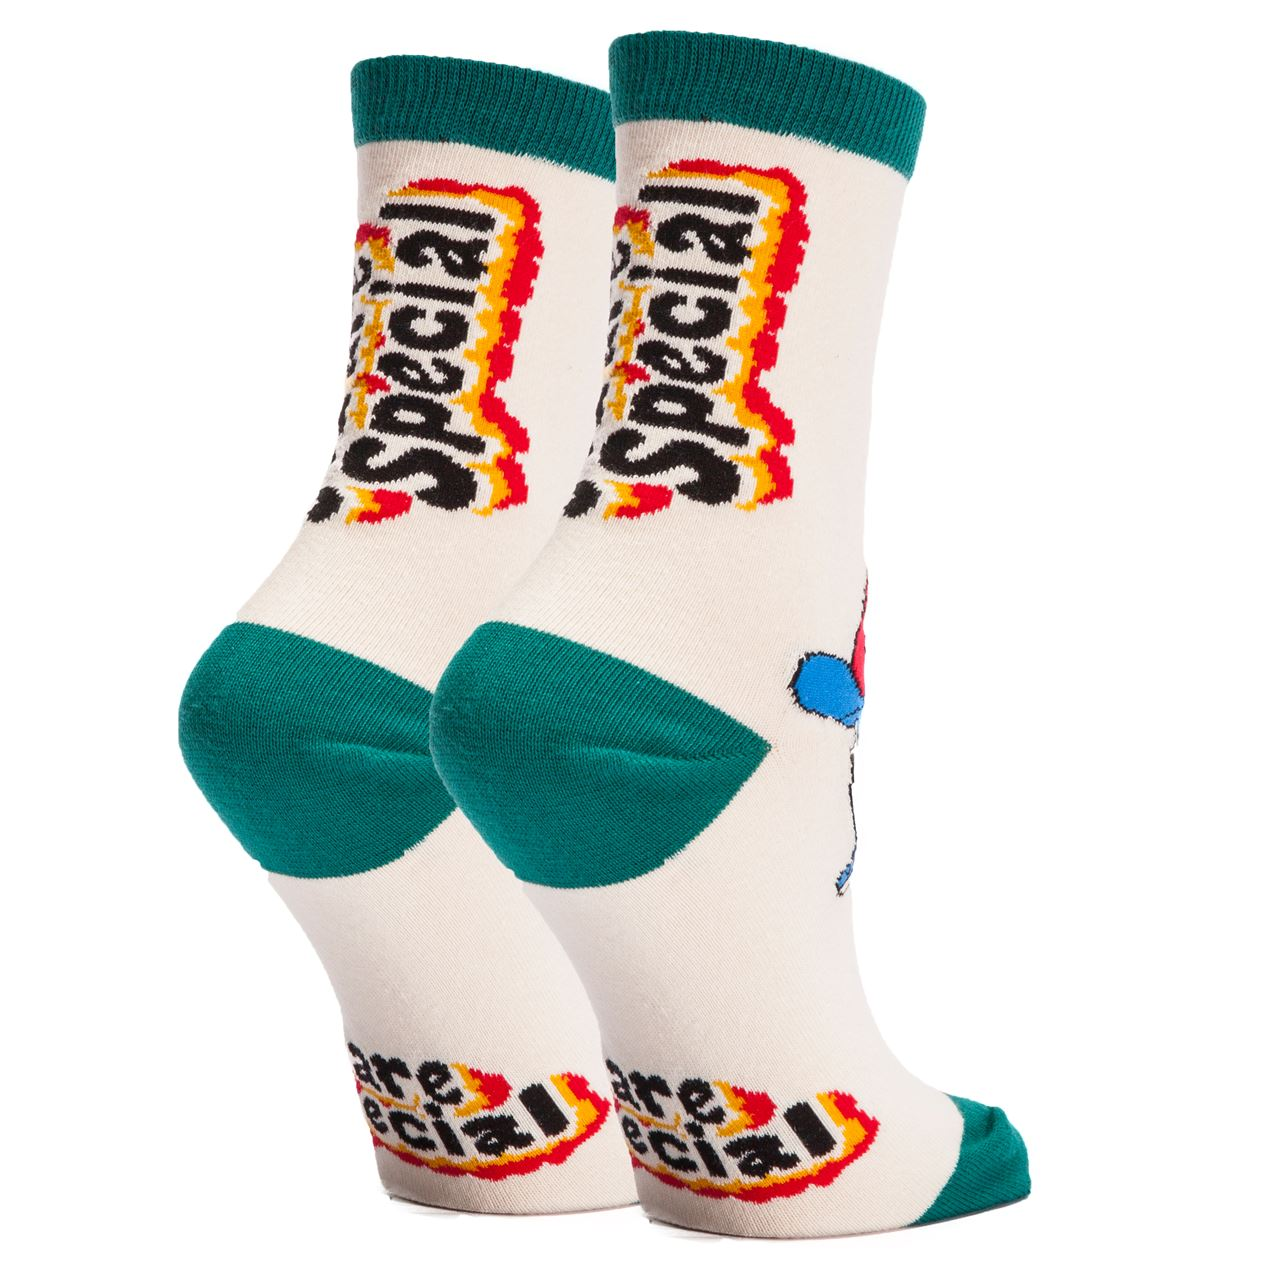 Mister Rogers You Are Special Women's Socks by OOOH Yeah Socks